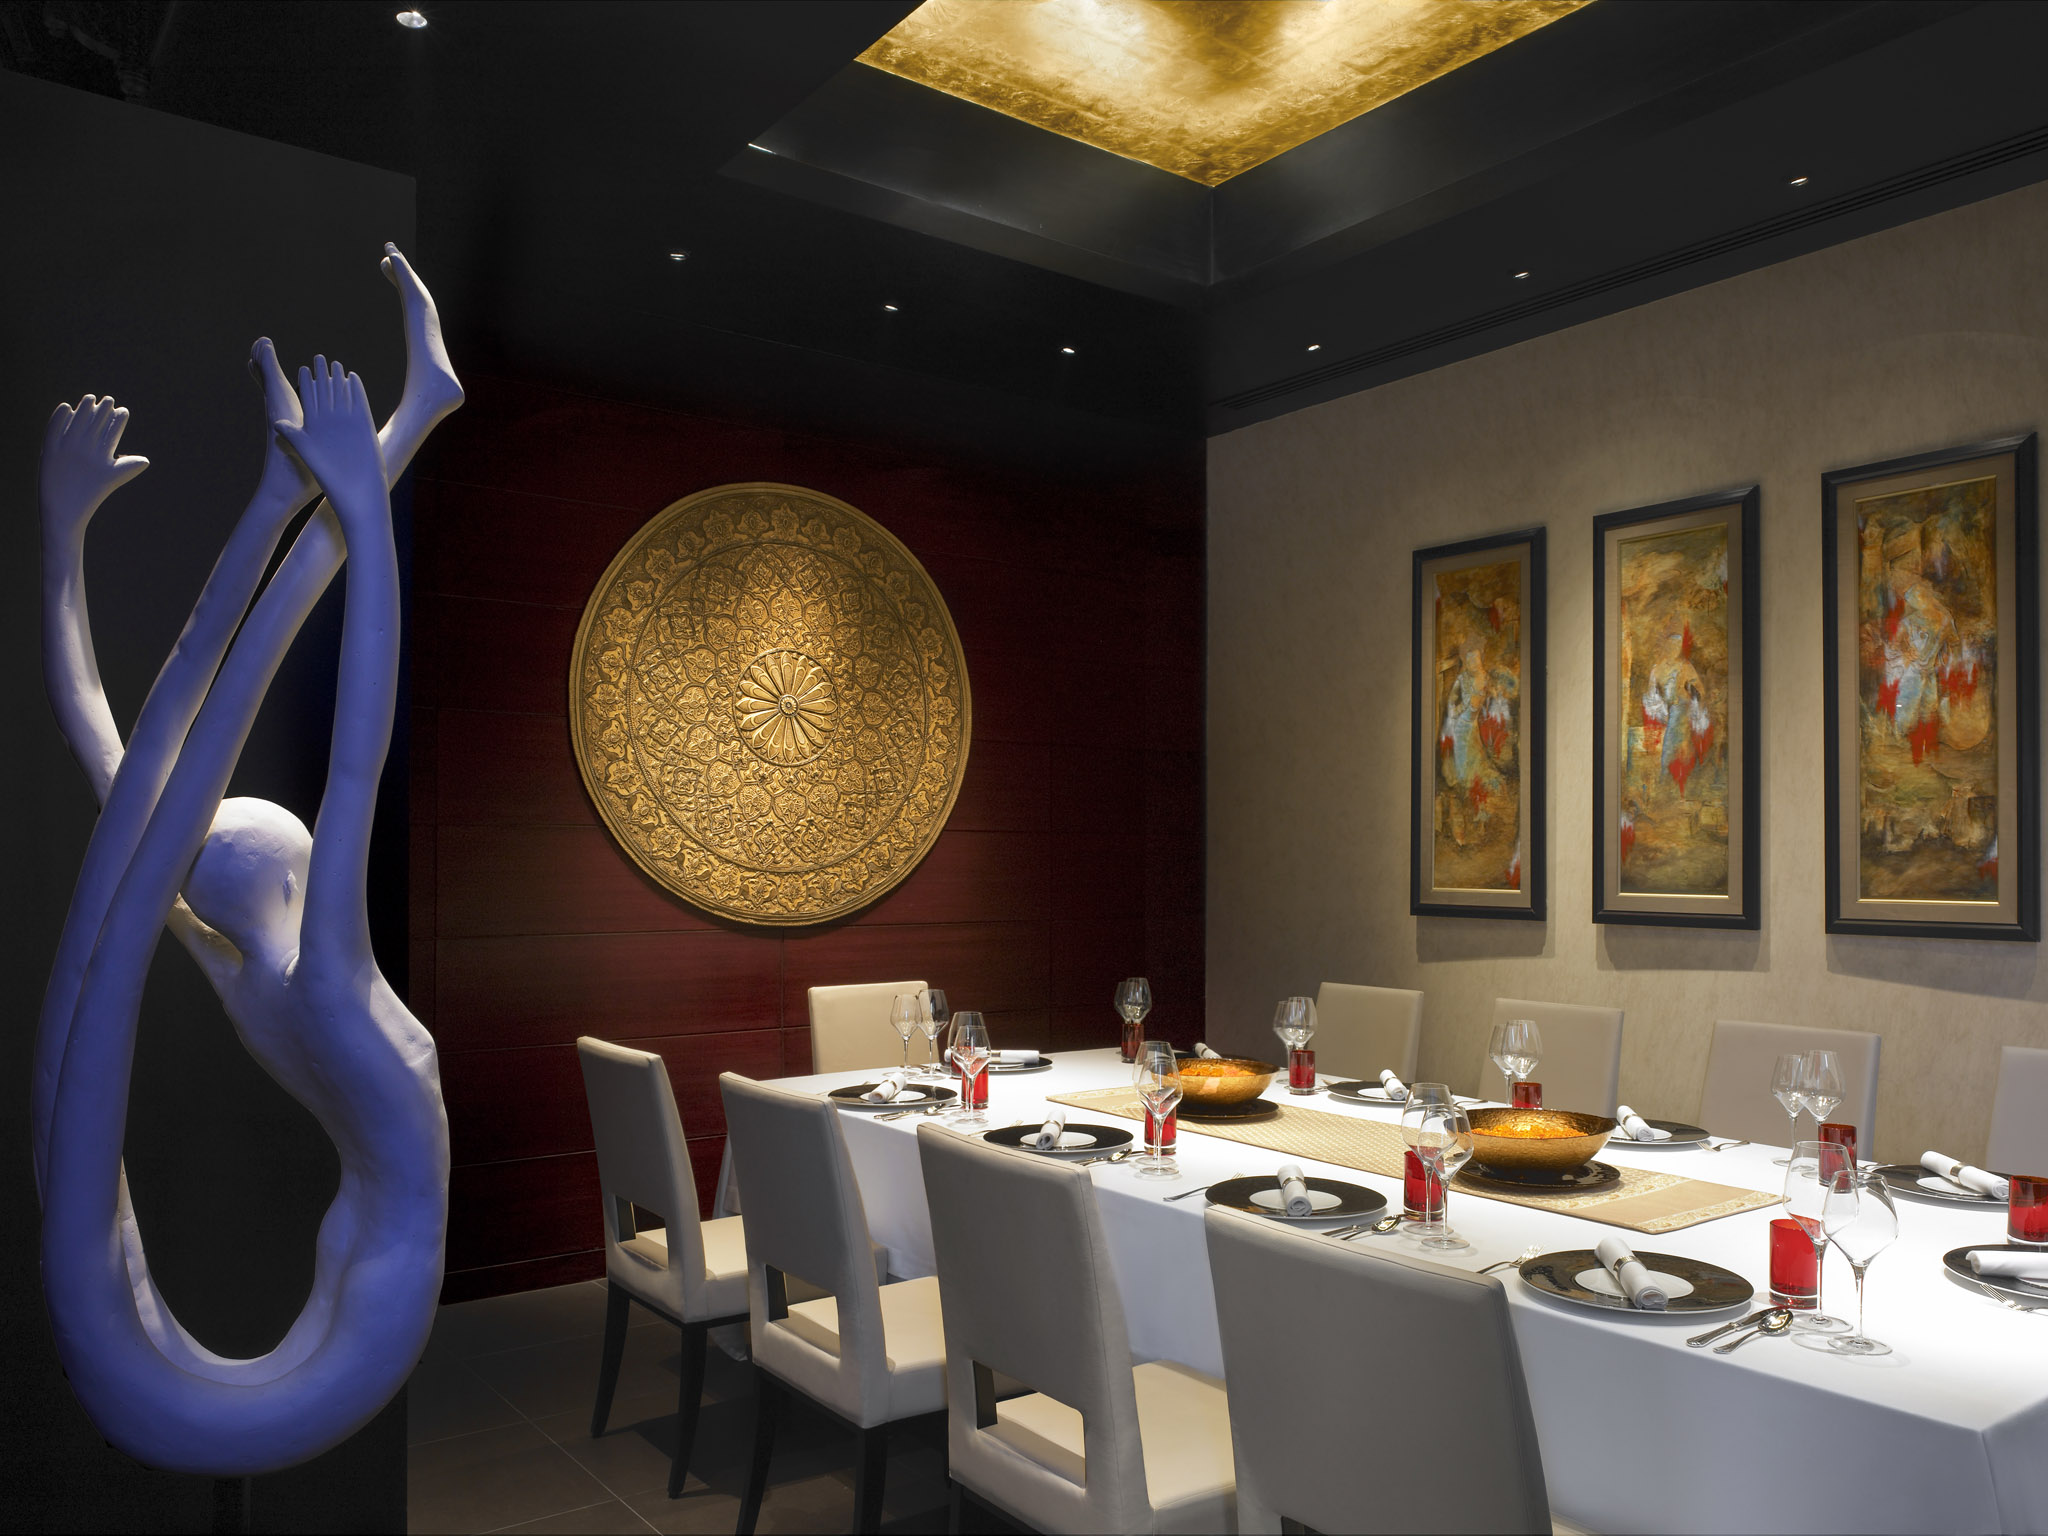 From Bengaluru to Delhi, with love: This exciting Taj restaurant pop-up serves up coastal cuisine